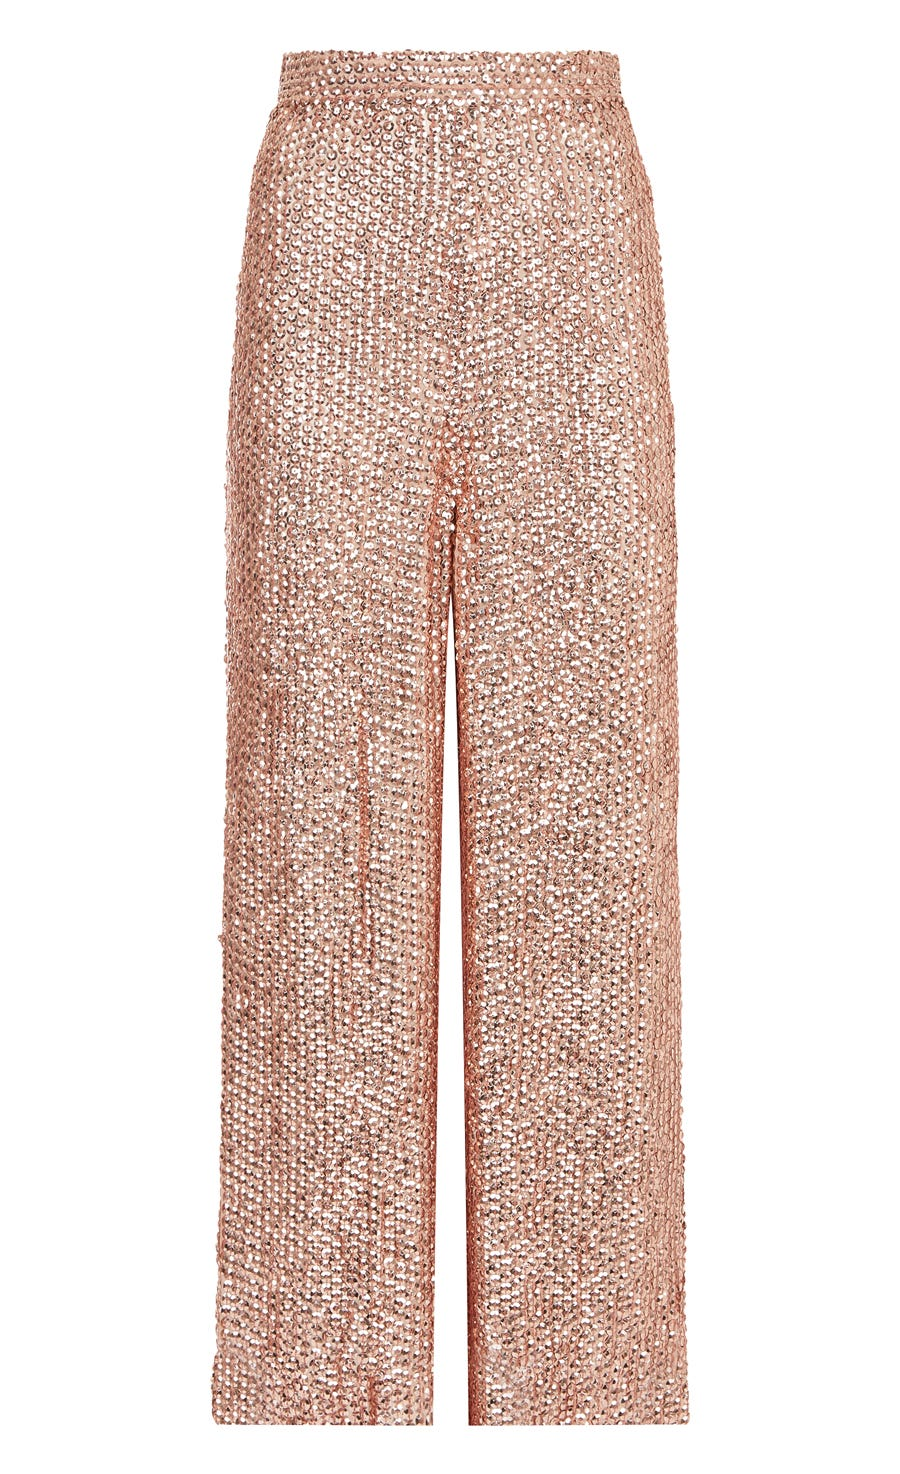 Tiara Trousers, Rose Quartz